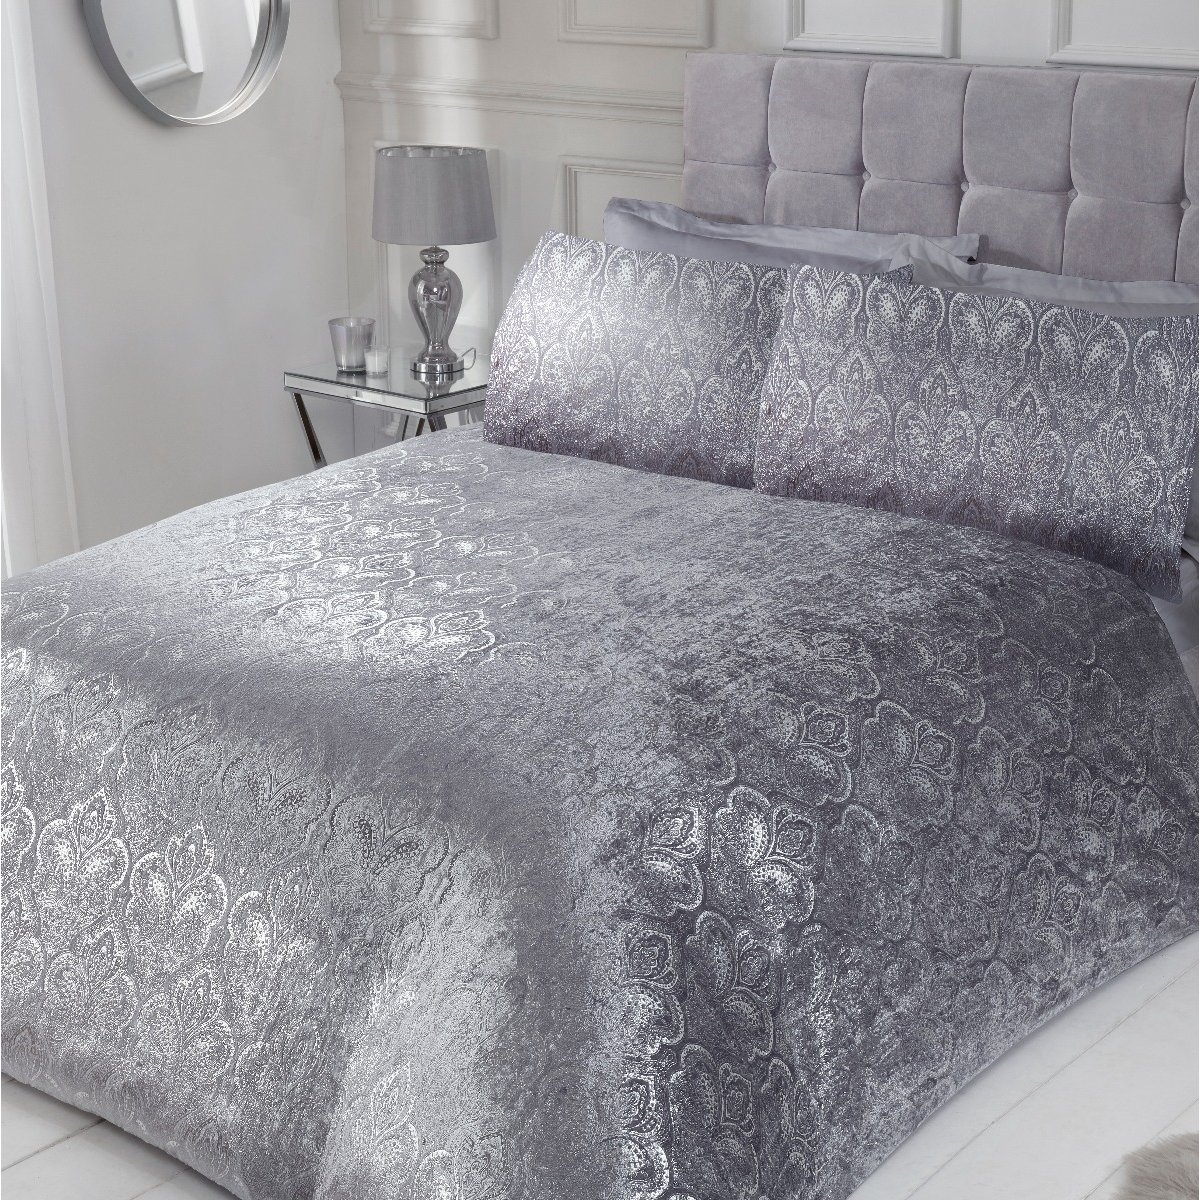 Foil Printed Paisley Crushed Velvet Bedding Silver Luxury Duvet Cover And Pillowcase Set